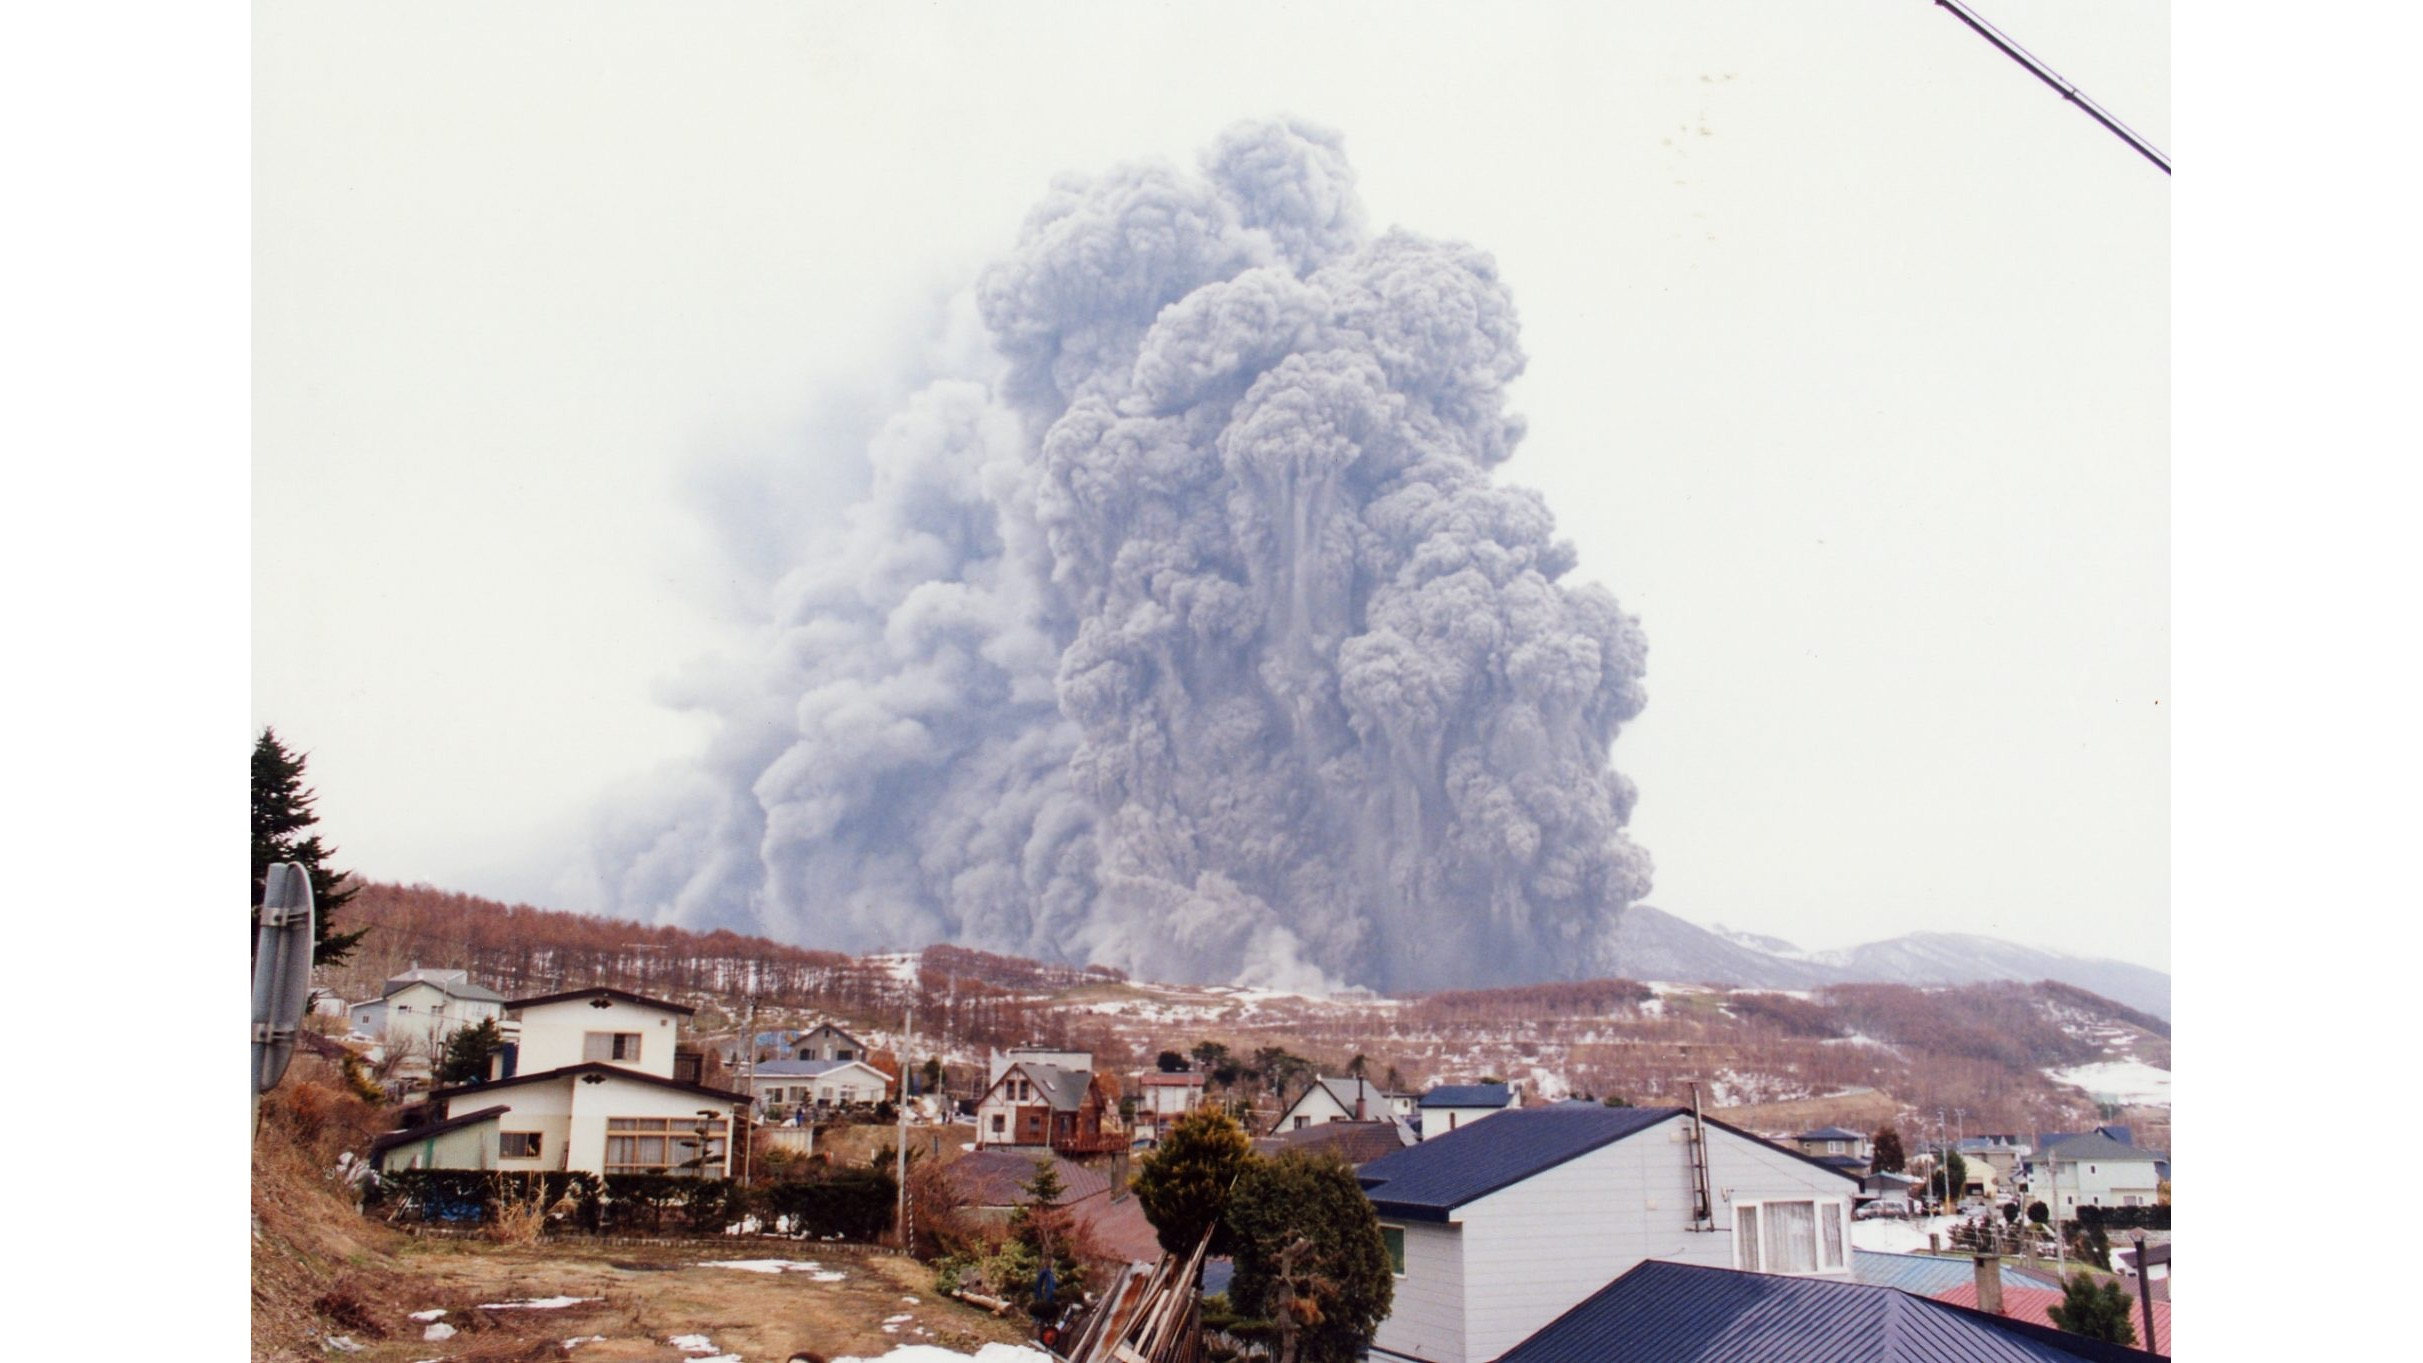 Mt. Usu when it erupted in 2000. As premonitory earthquake symptoms were occurring, visitors and local residents were able to evacuate resulting in no human damage. photo: Toya-Usu UNESCO Global Geopark Council